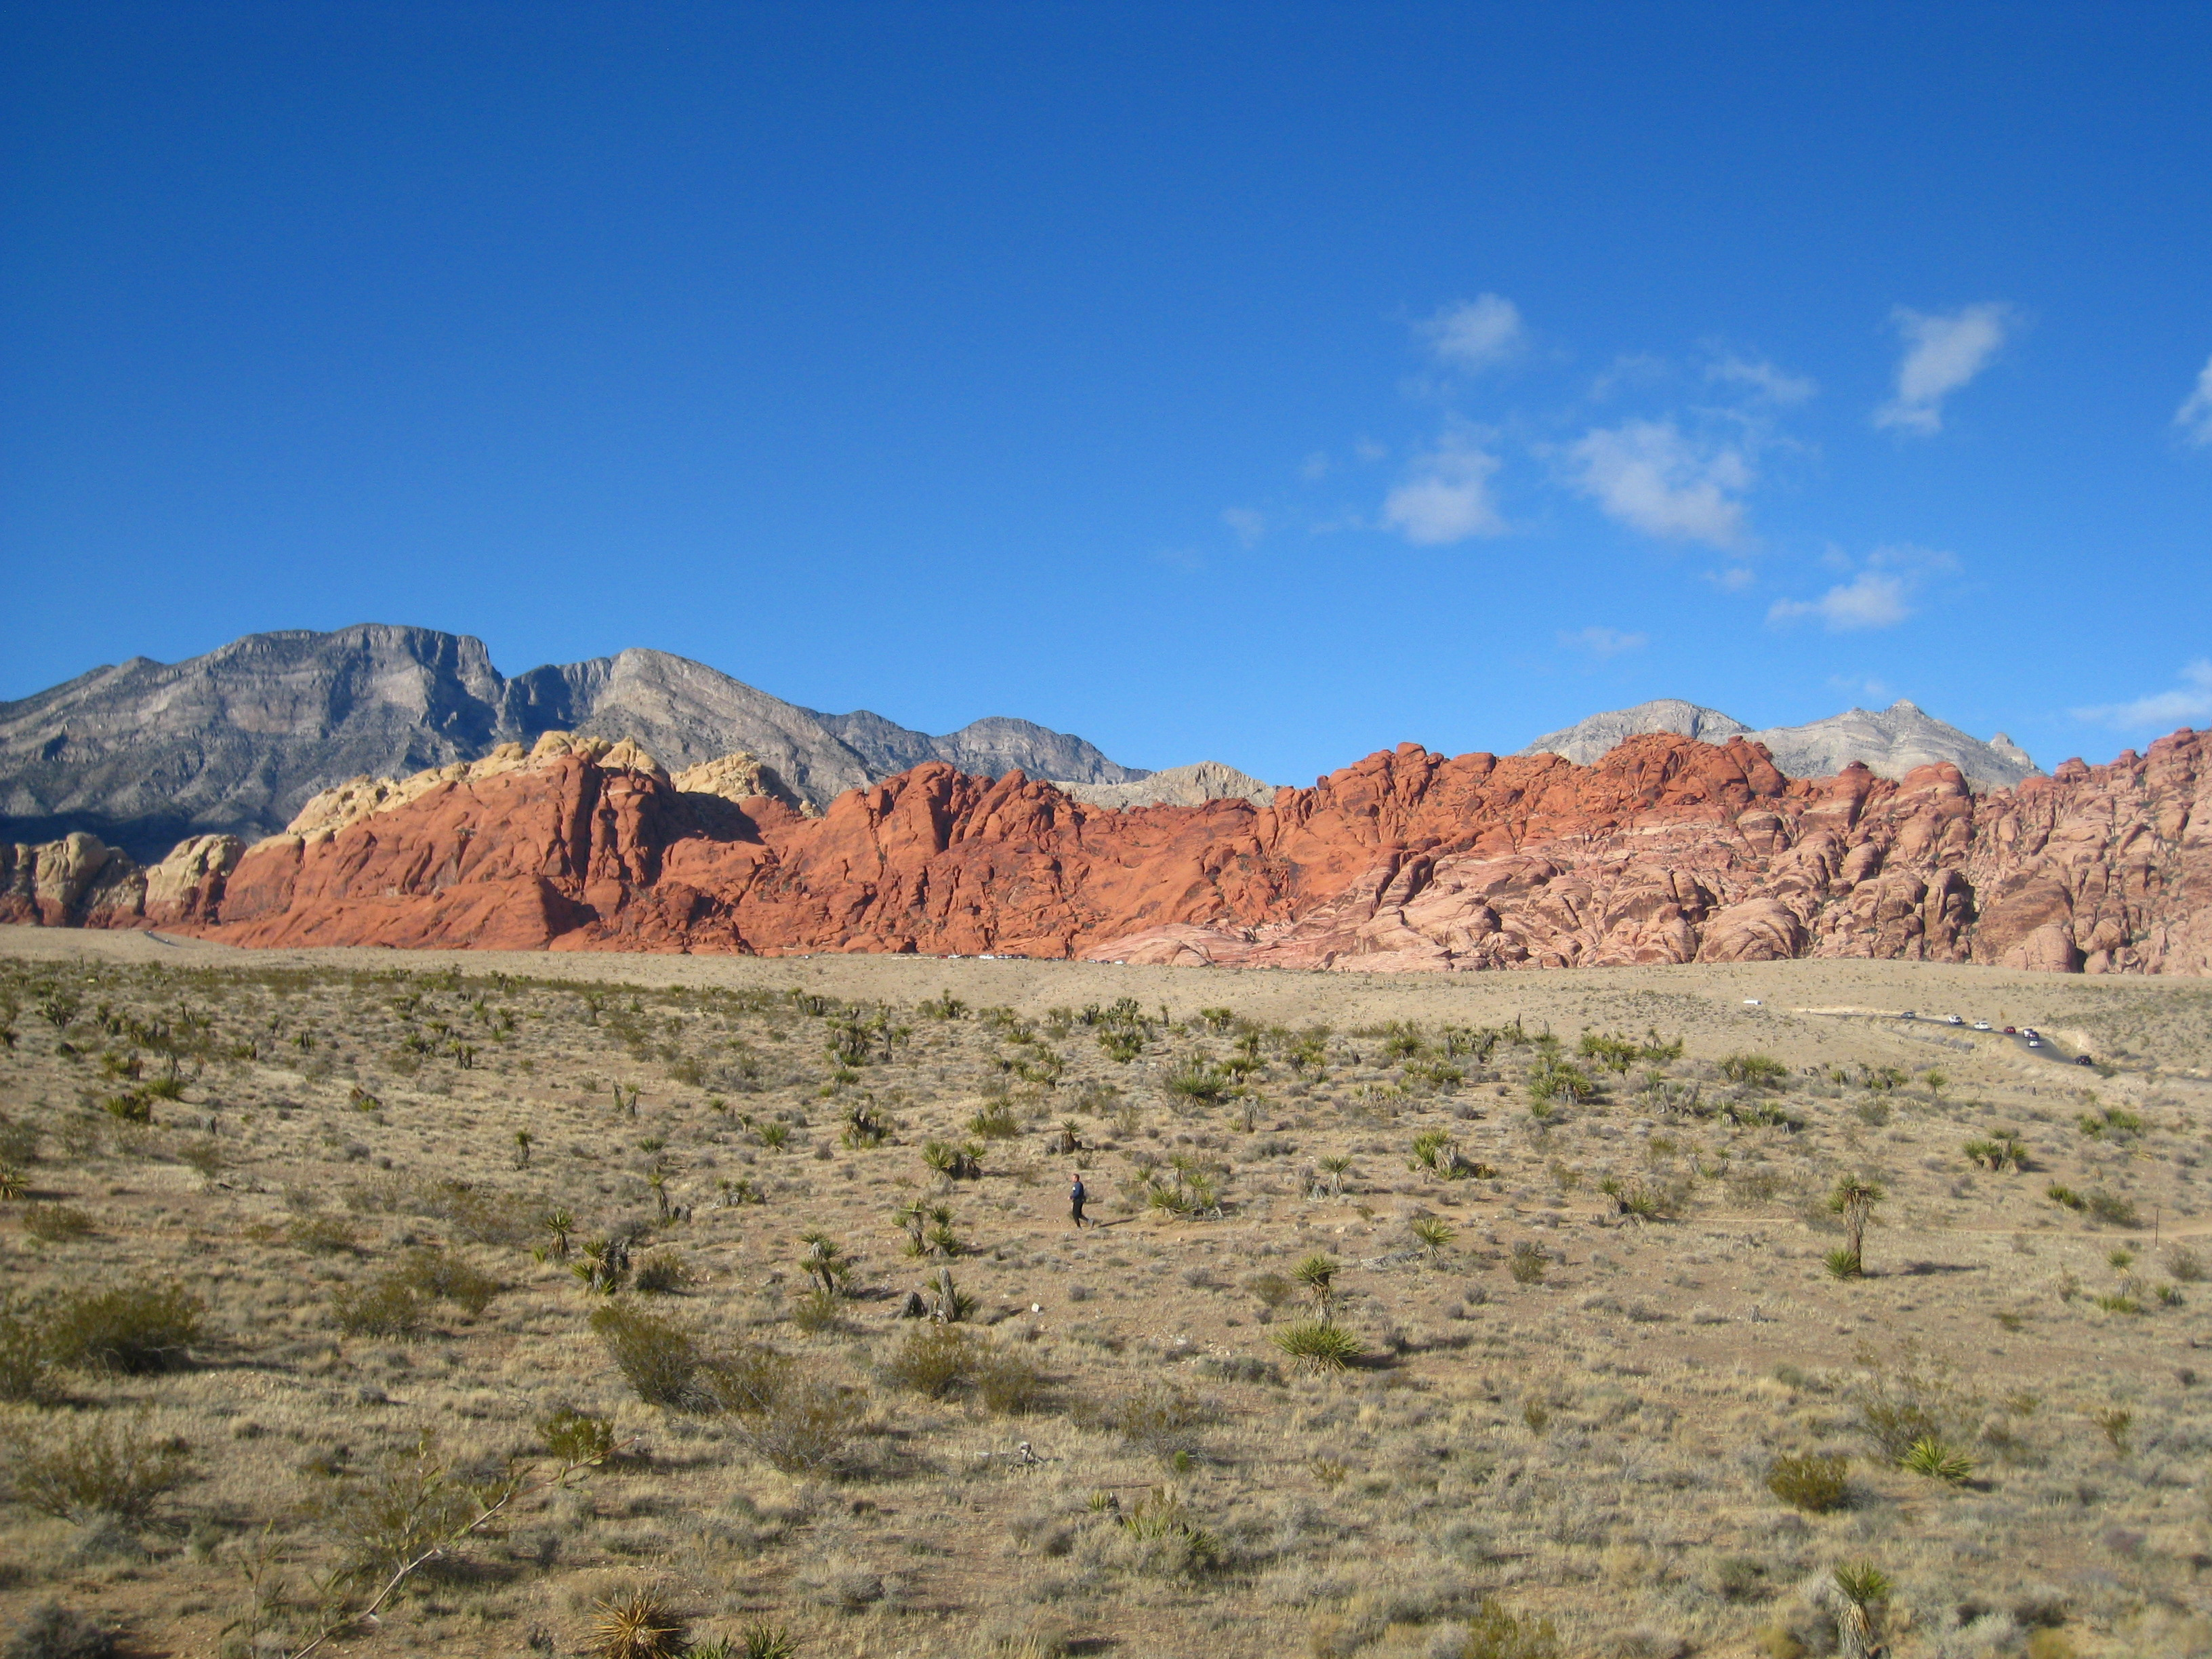 View of Red Rock Canyon from the highway